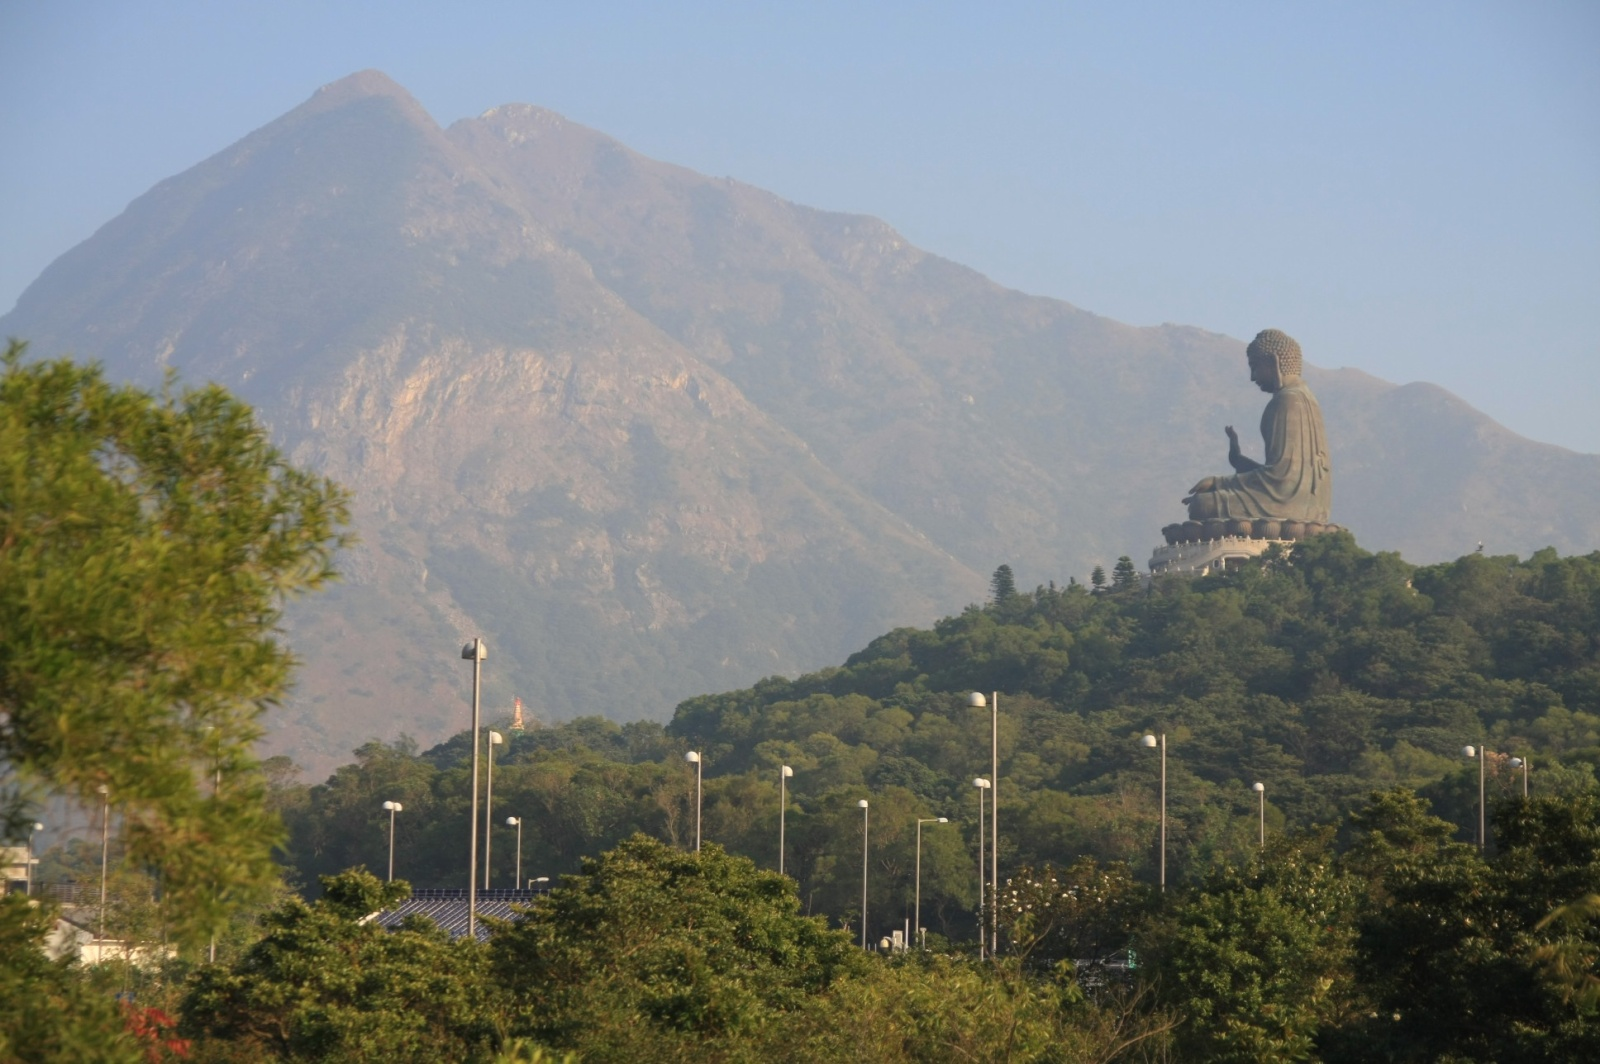 Another Big Budda for us - the Tian Tan Buddha, 34 m tall, recently was the tallest buddha in the world